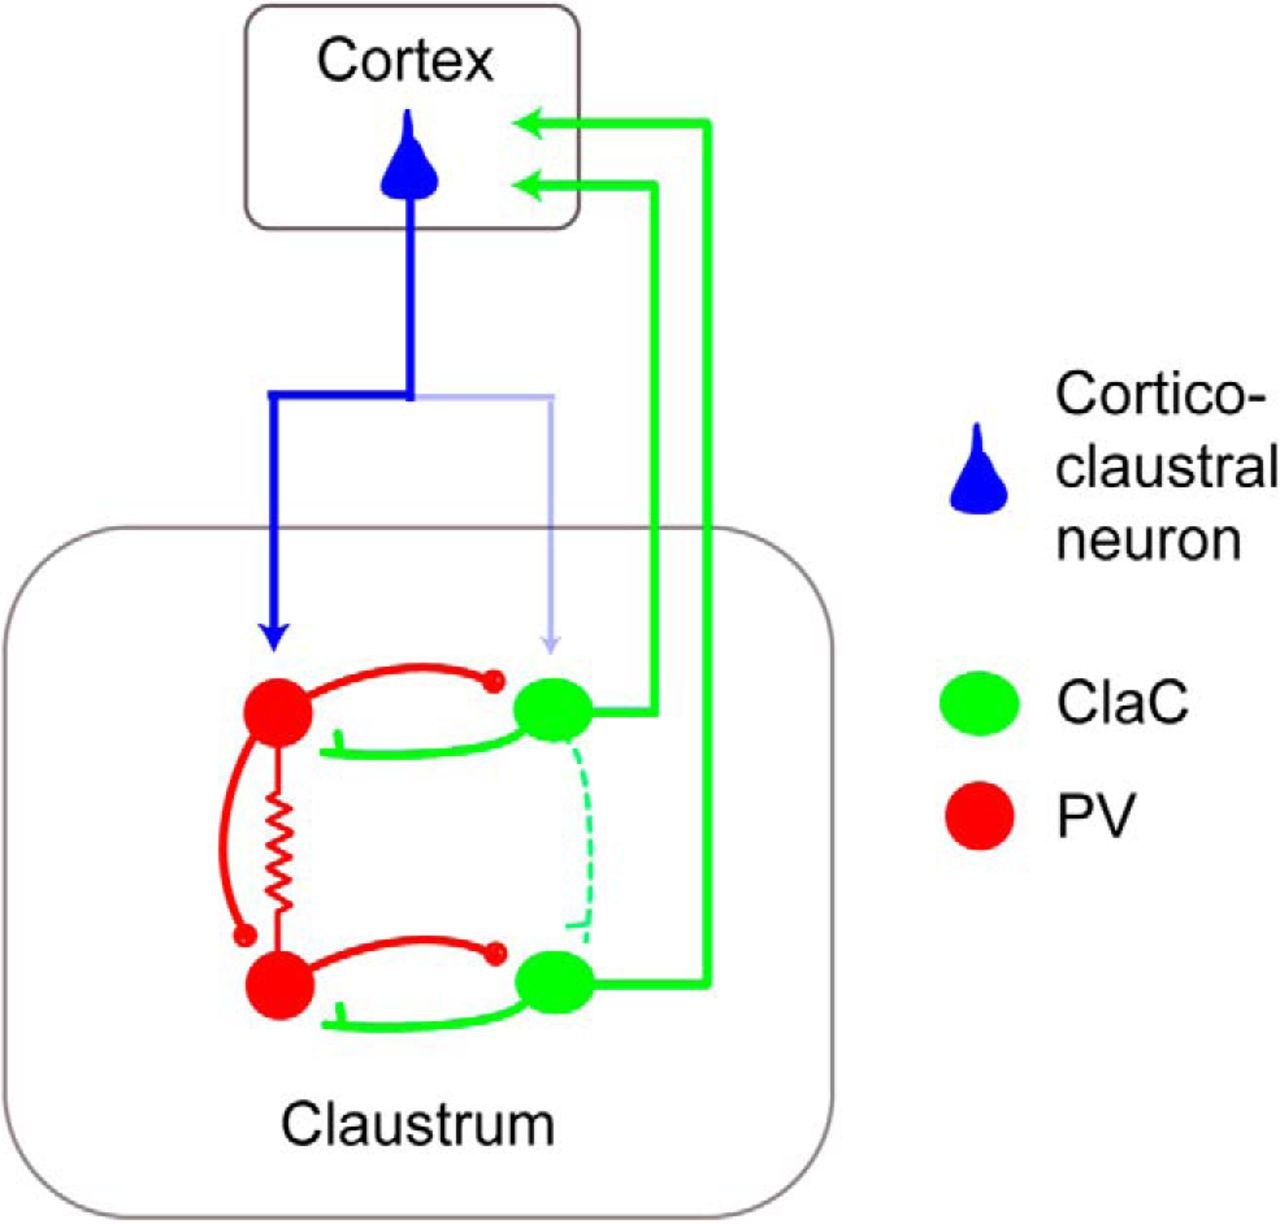 Synaptic Organization Of The Neuronal Circuits Claustrum Anatomy A Short Circuit Open Electrical Download Figure In New Tab